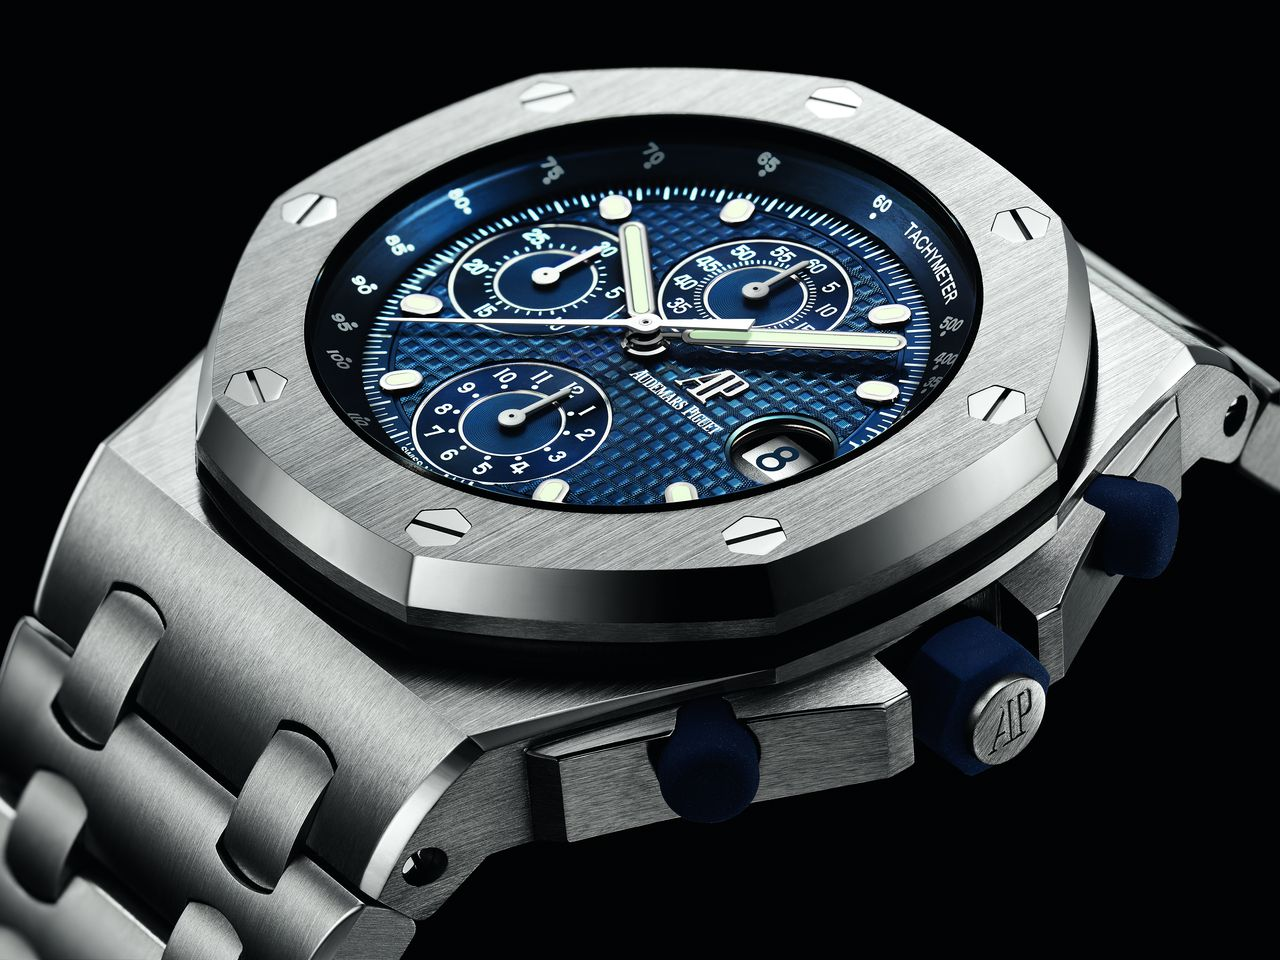 Audemars Piguet Royal Oak Offshore Chronograph Re-edition 25th Anniversary - ebből a szögből azért látszik, hogy a 14,4 milliméteres magassághoz 42 milliméter egy kicsit kevés